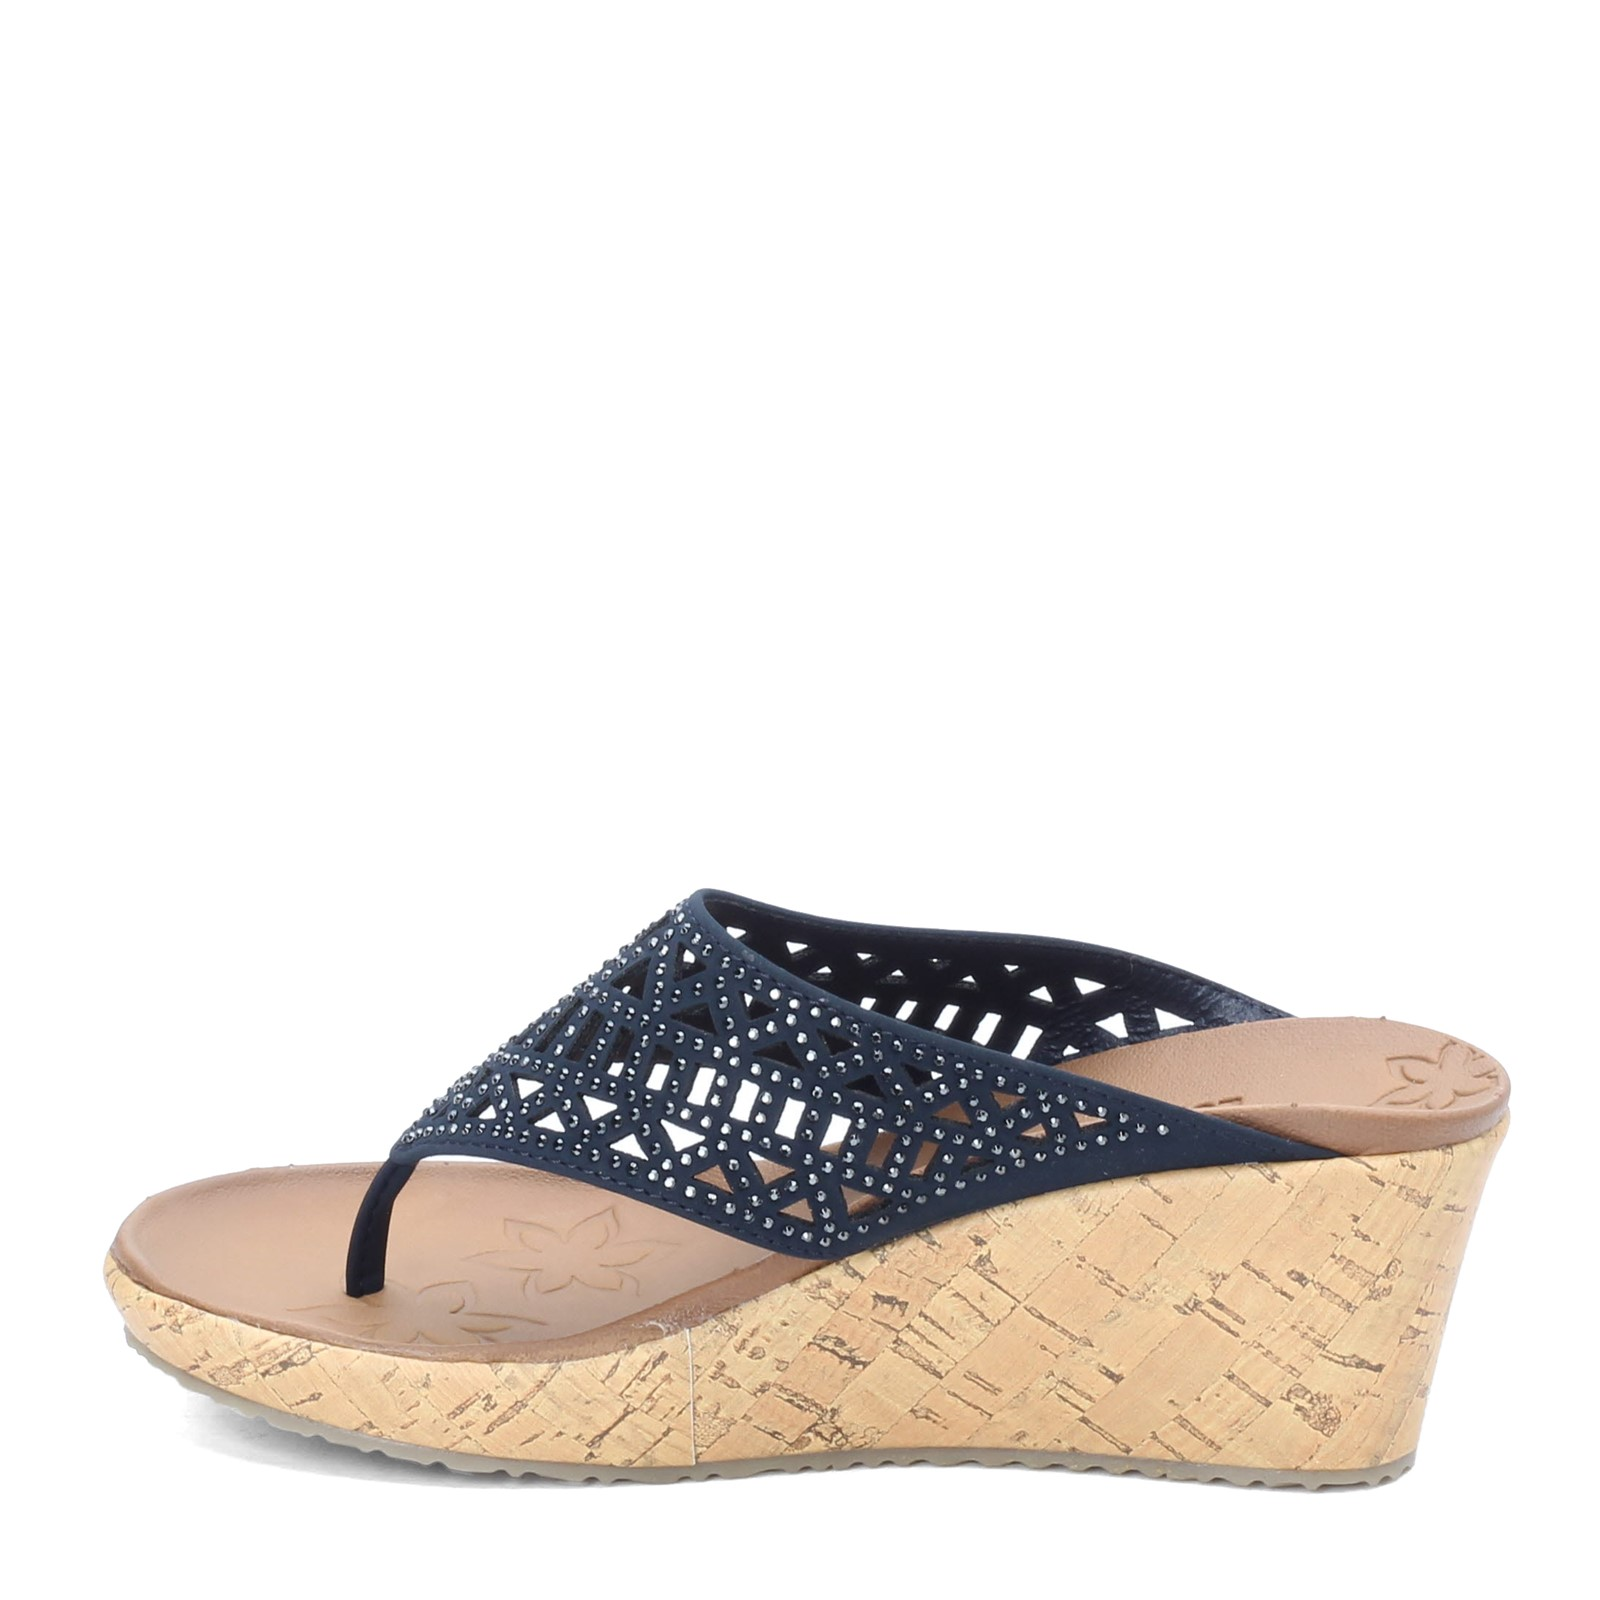 f005e498cd1 Next. add to favorites. Women's Skechers, Beverlee Summer Visit ...